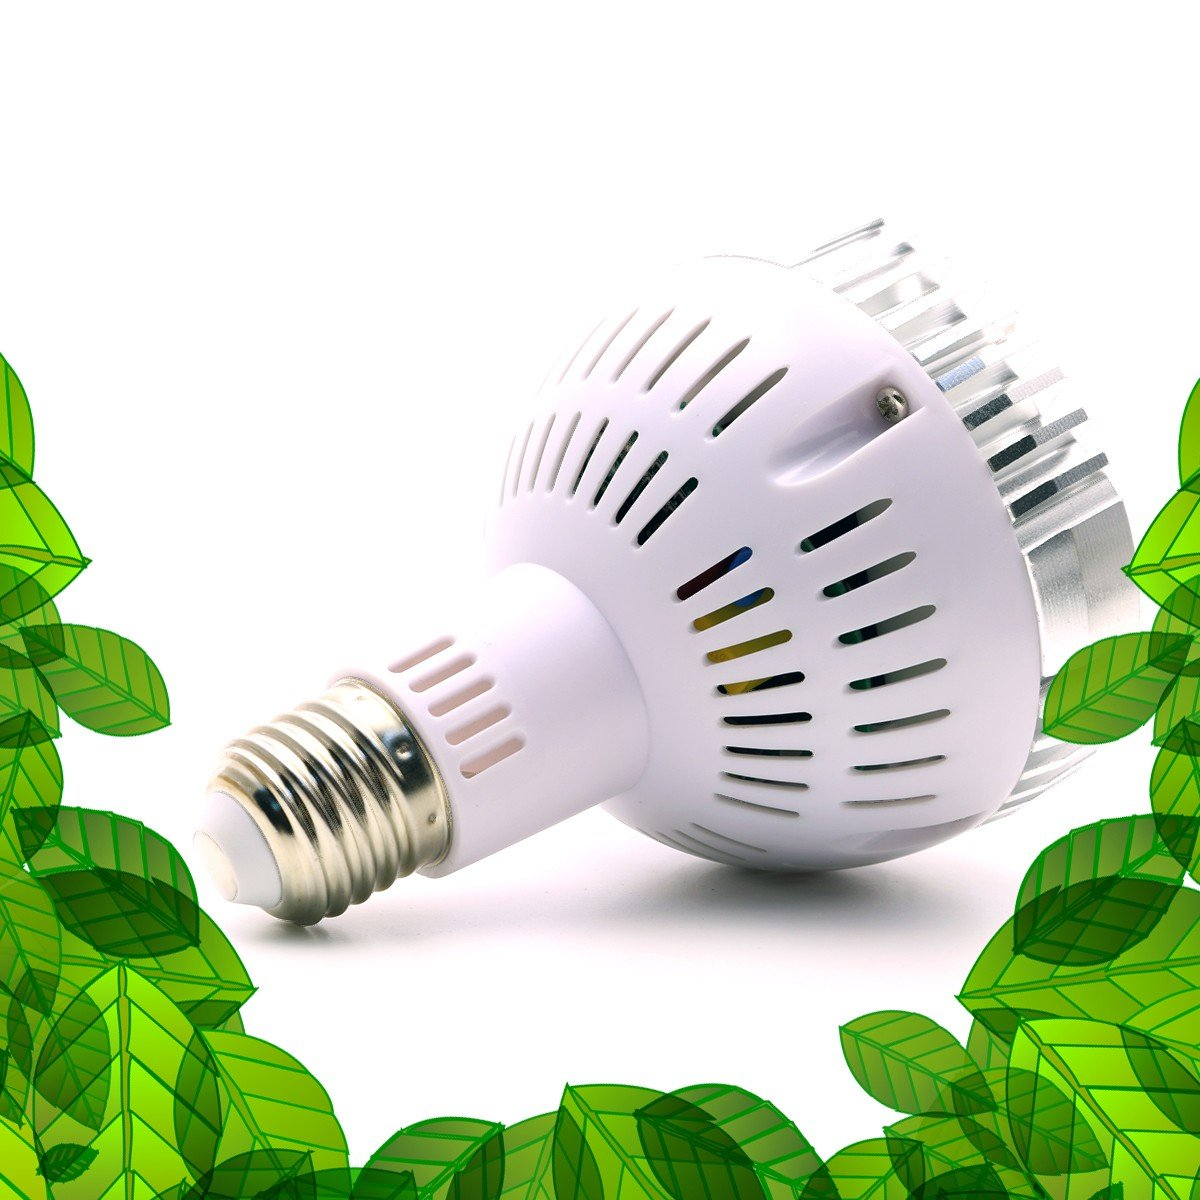 spectrabulb x30 ampoule horticole leds blanches pour terrarium 30w leds osram e27 terraled. Black Bedroom Furniture Sets. Home Design Ideas